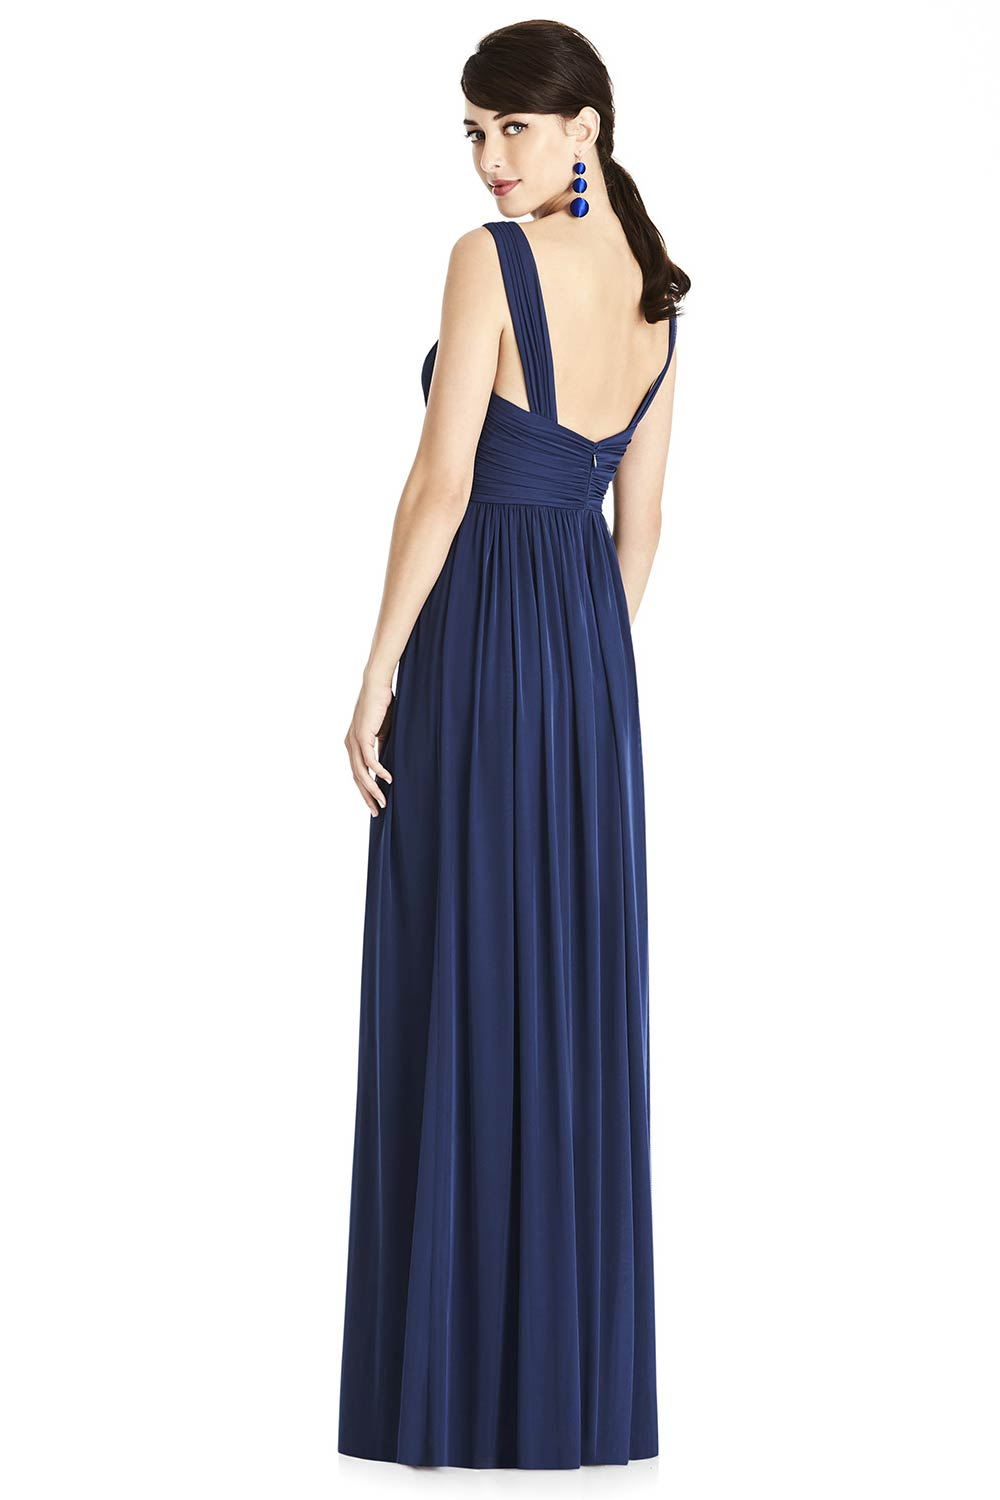 bridesmaid-dresses-dessy-26013